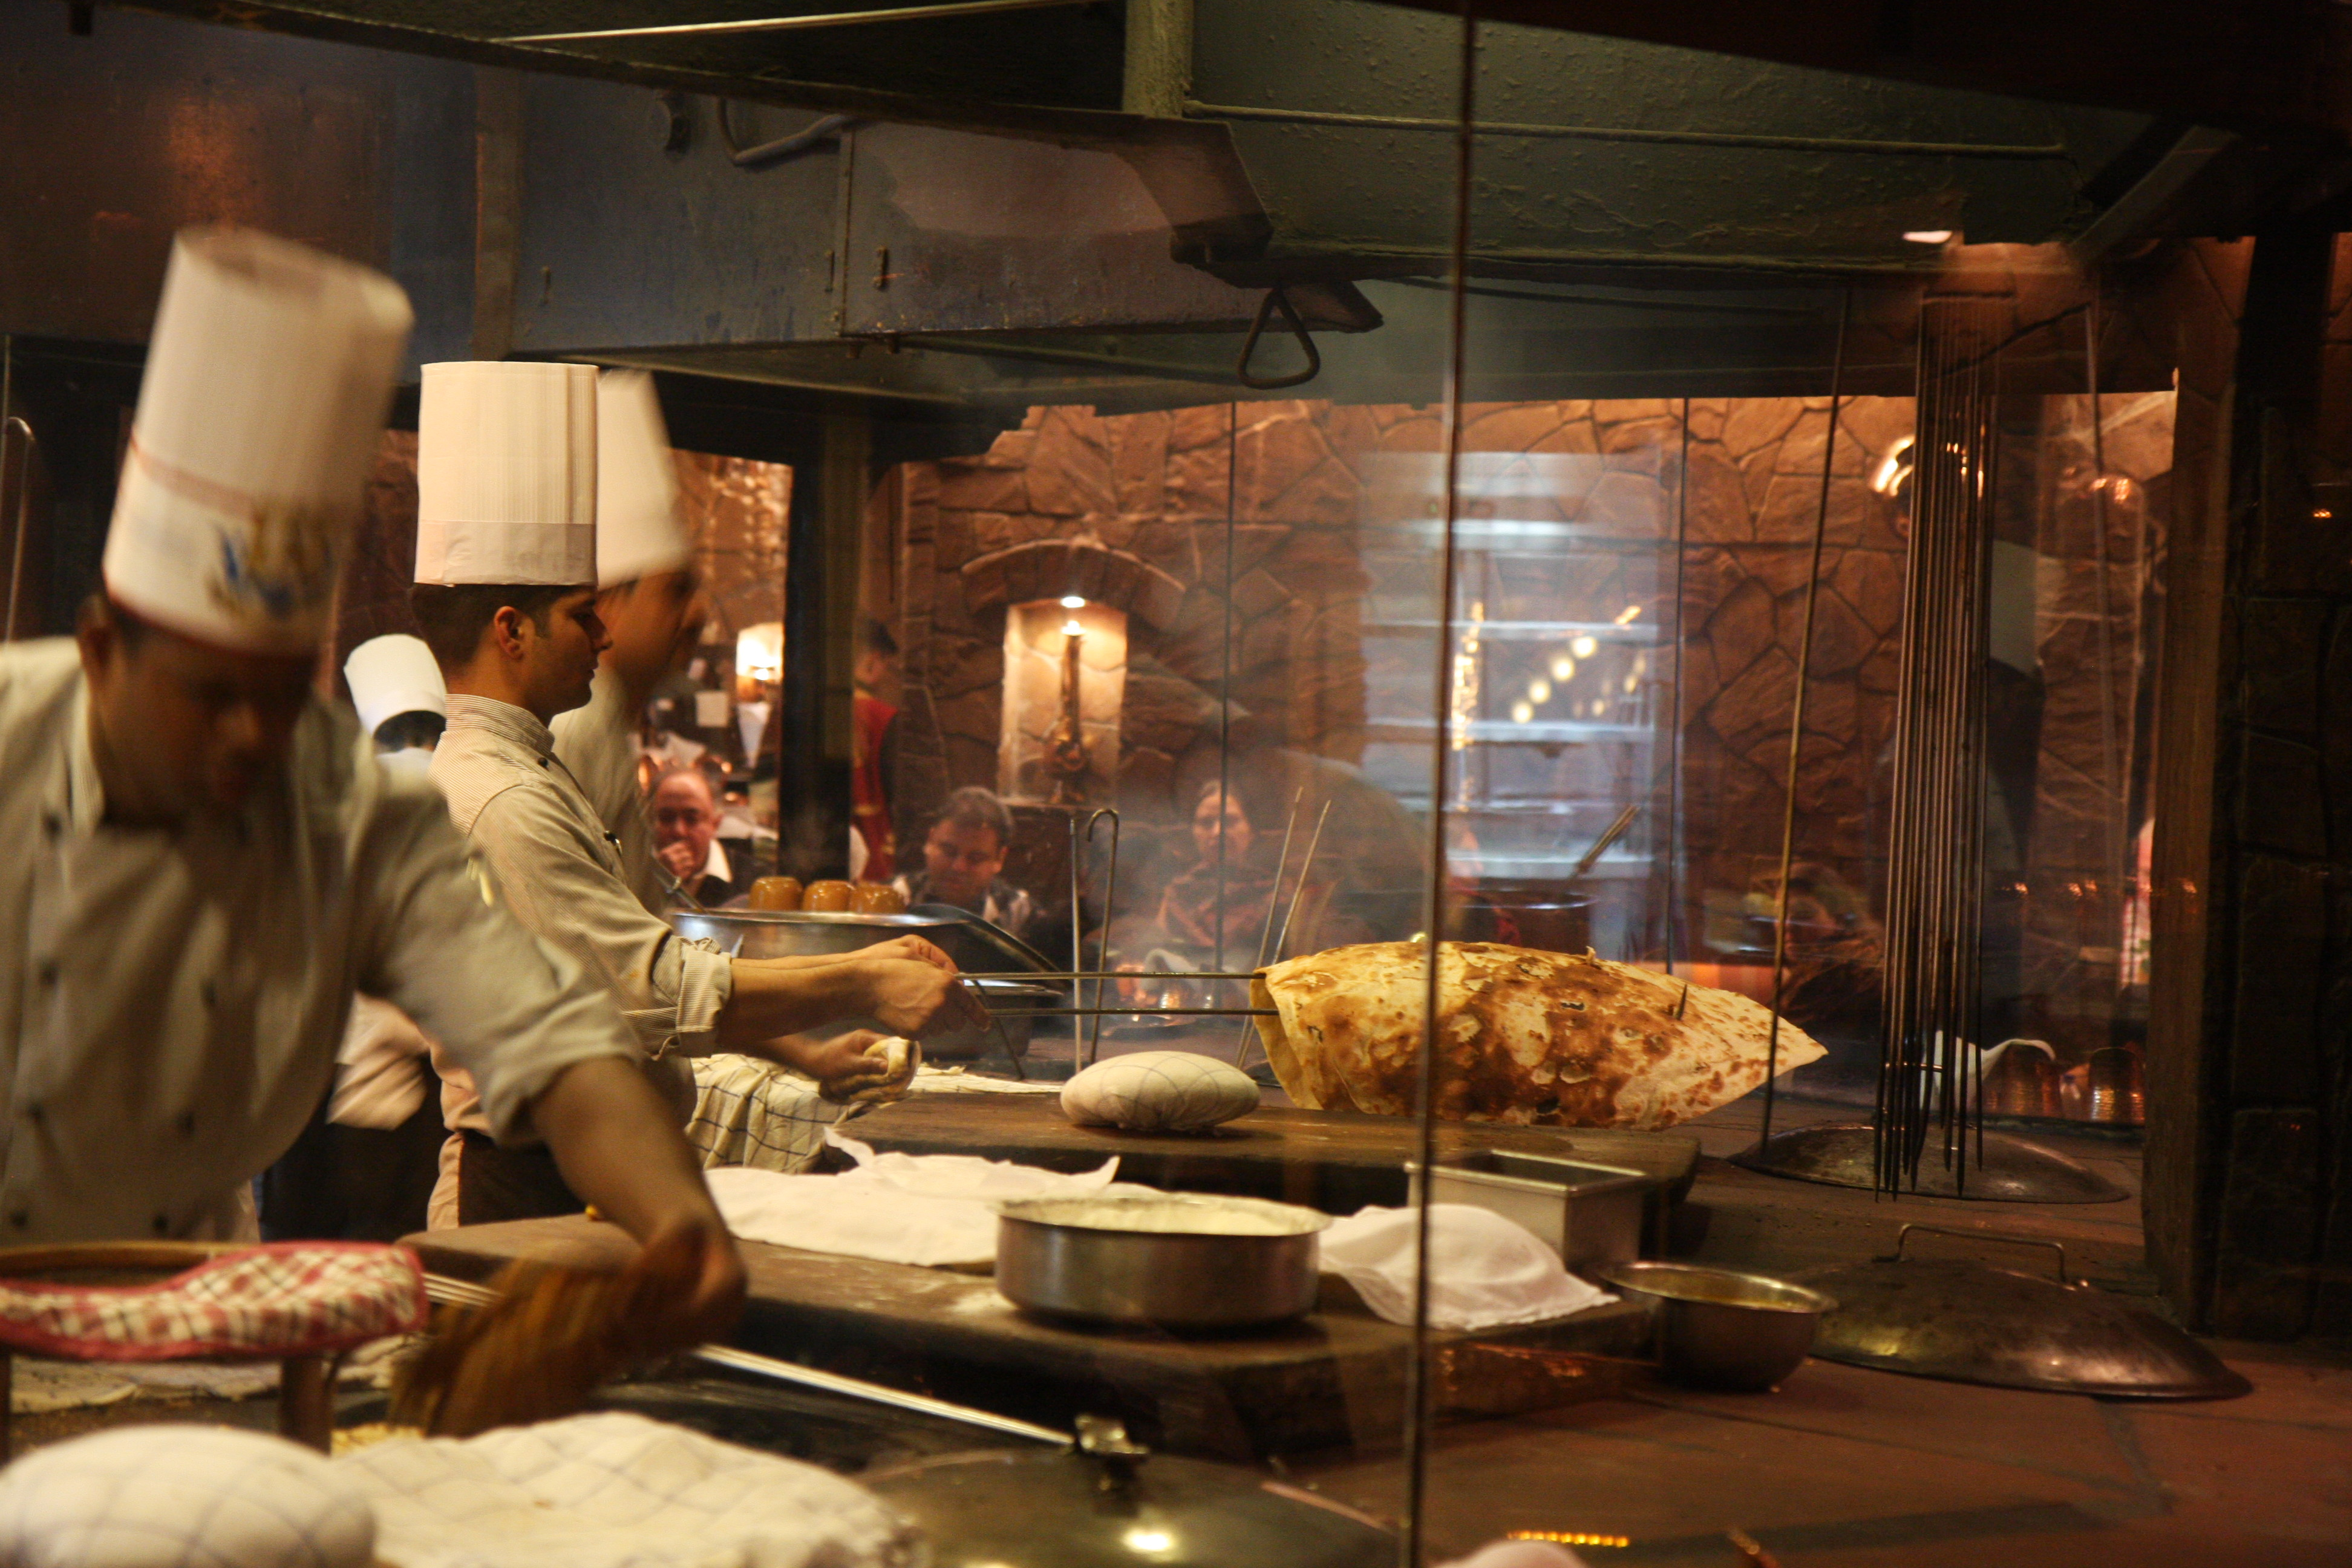 Perhaps the most fascinating feature of bukhara is the large open kitchen where chefs skillfully heave long skewers of marinated meats into the blazing oven